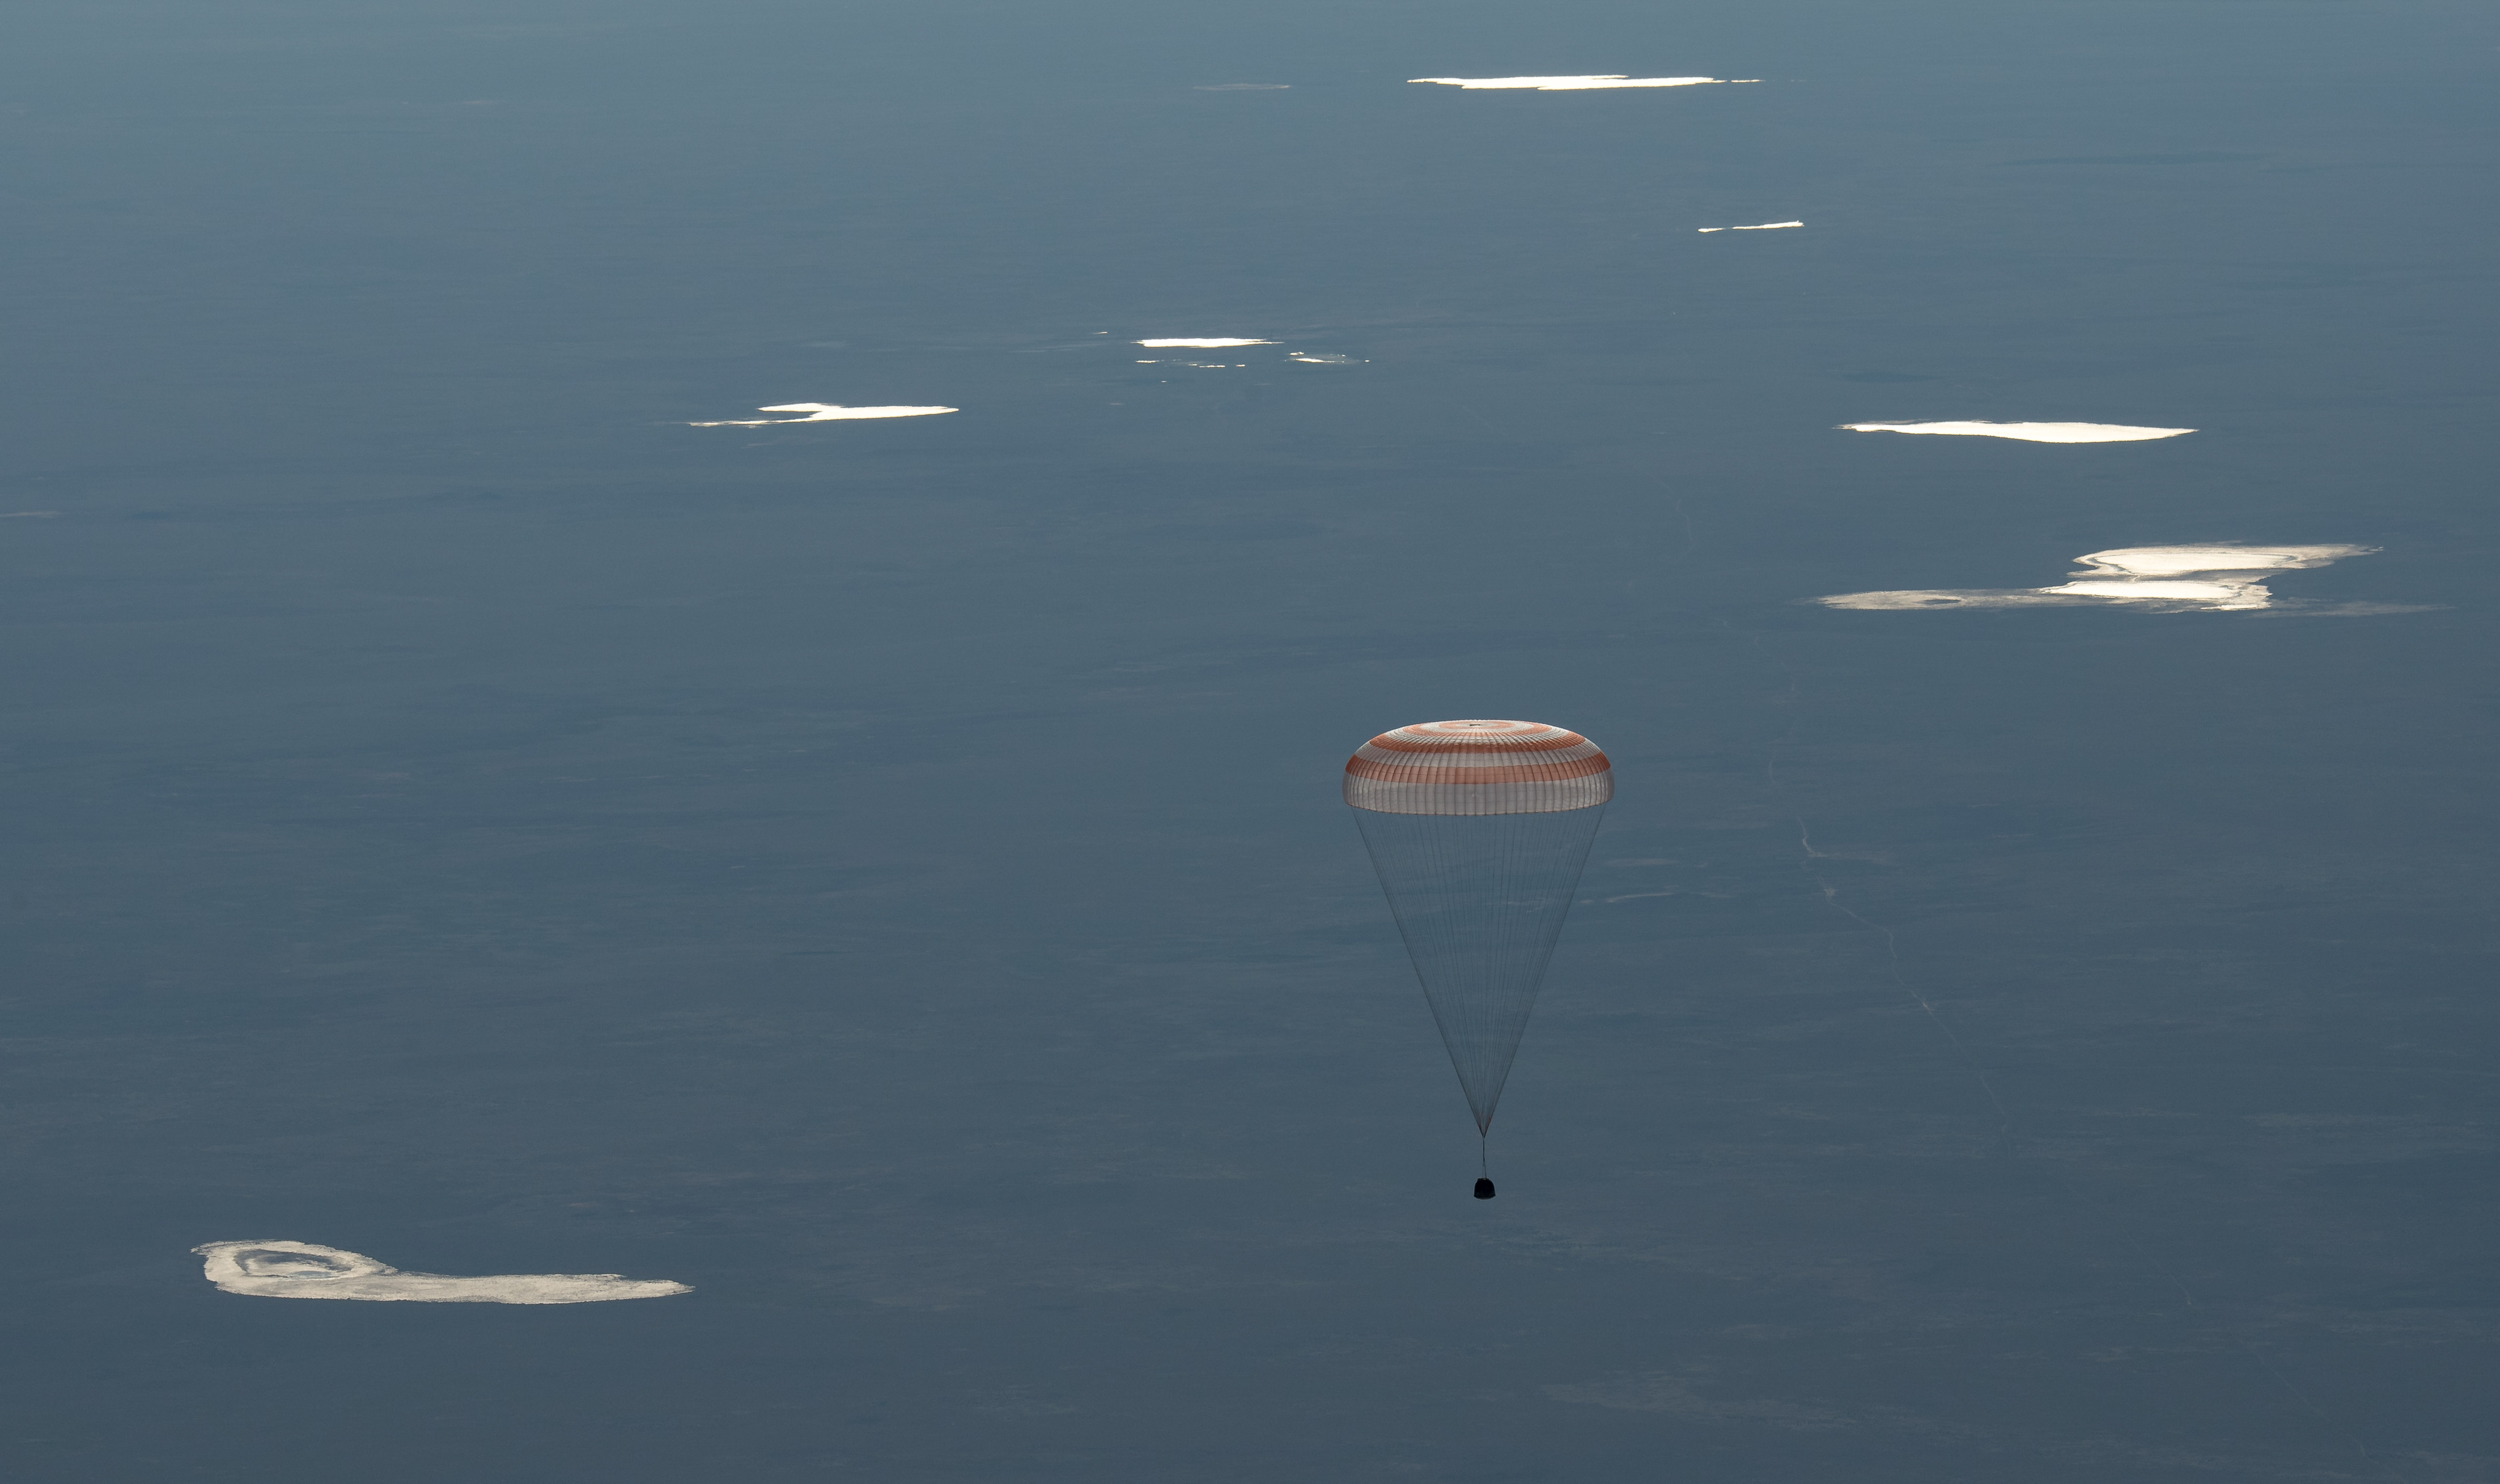 Expedition 55 Crew Returns Home from the International Space Station